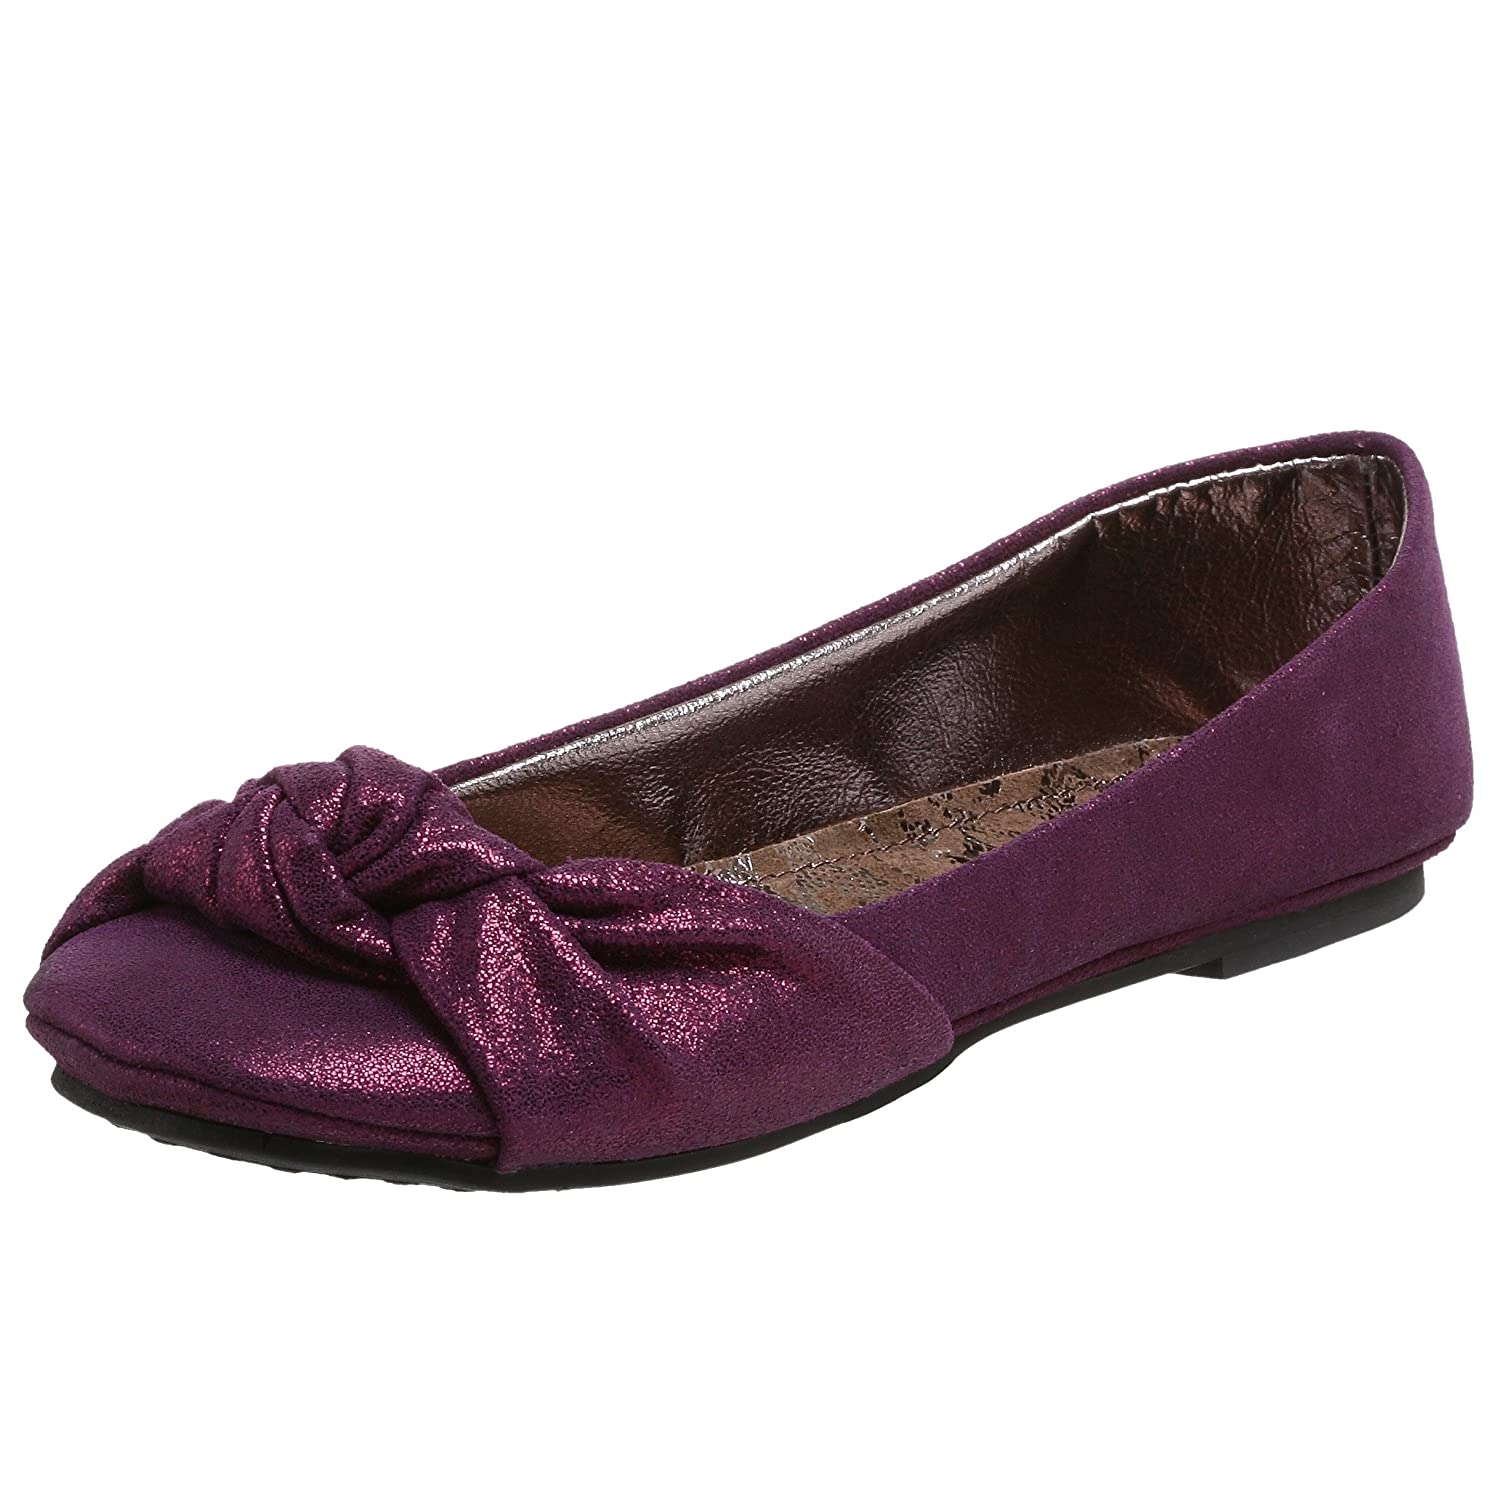 Endless.com: Steve Madden Women's Crunchh Knotted Flat: Categories - Free Overnight Shipping & Return Shipping :  purple womens shoes flats steve madden